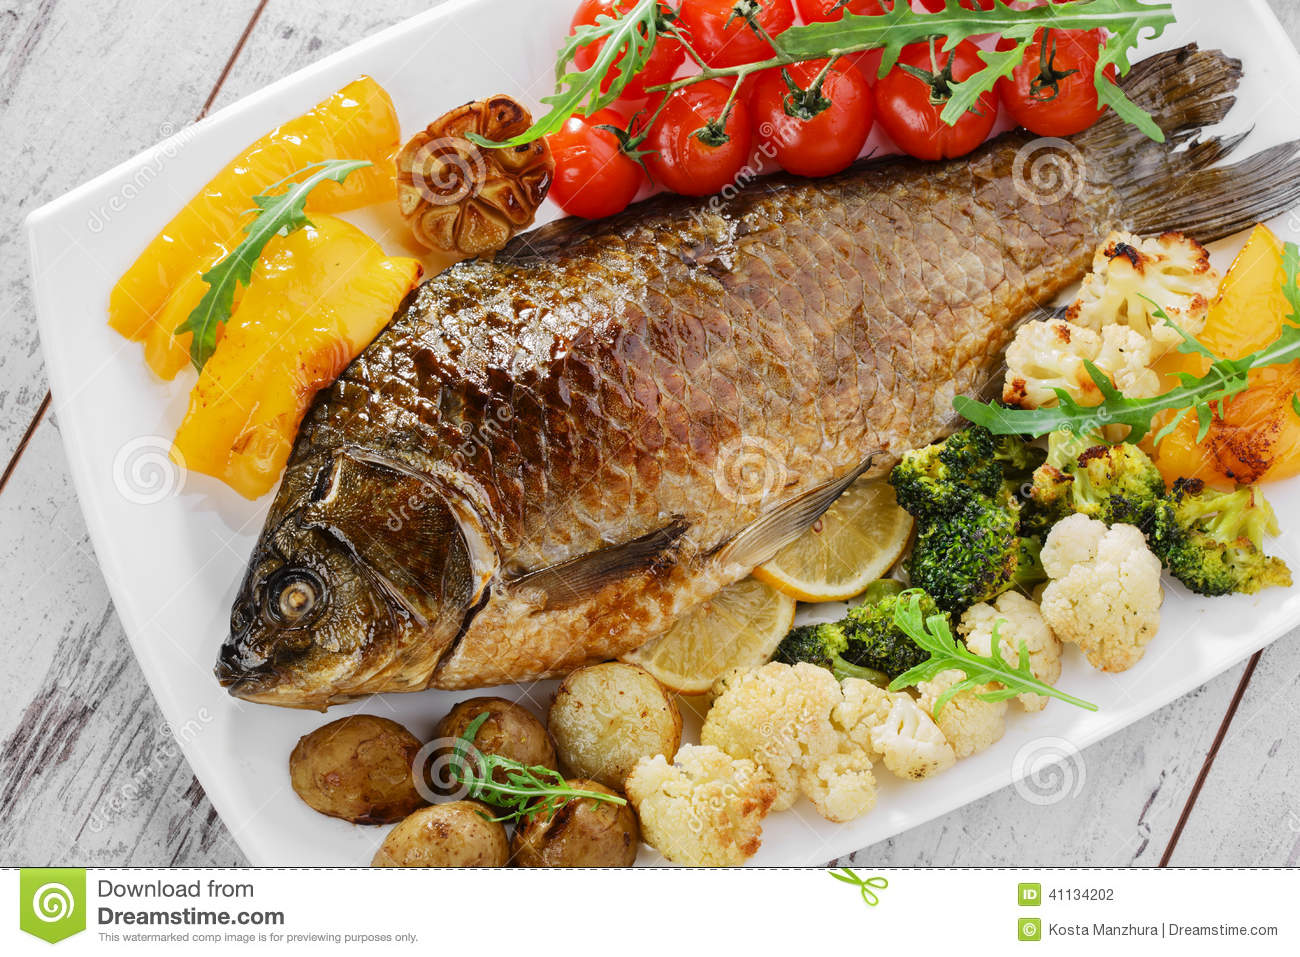 Baked fish with vegetables stock photo image 41134202 for What vegetables go with fish